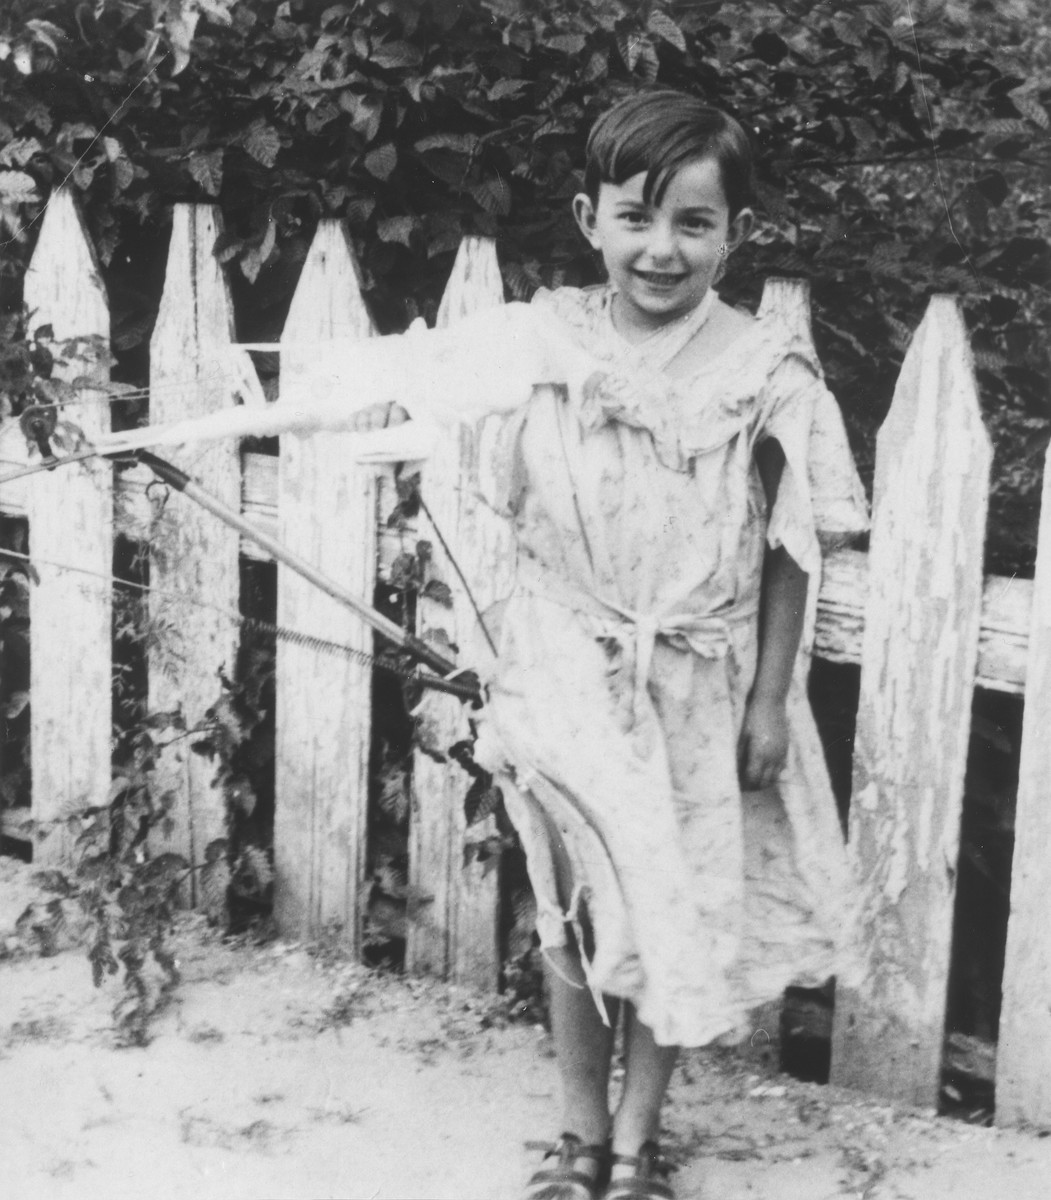 A young Jewish girl poses by a garden fence.  Pictured is Chaja Garbasz, who later perished in the Holocaust.